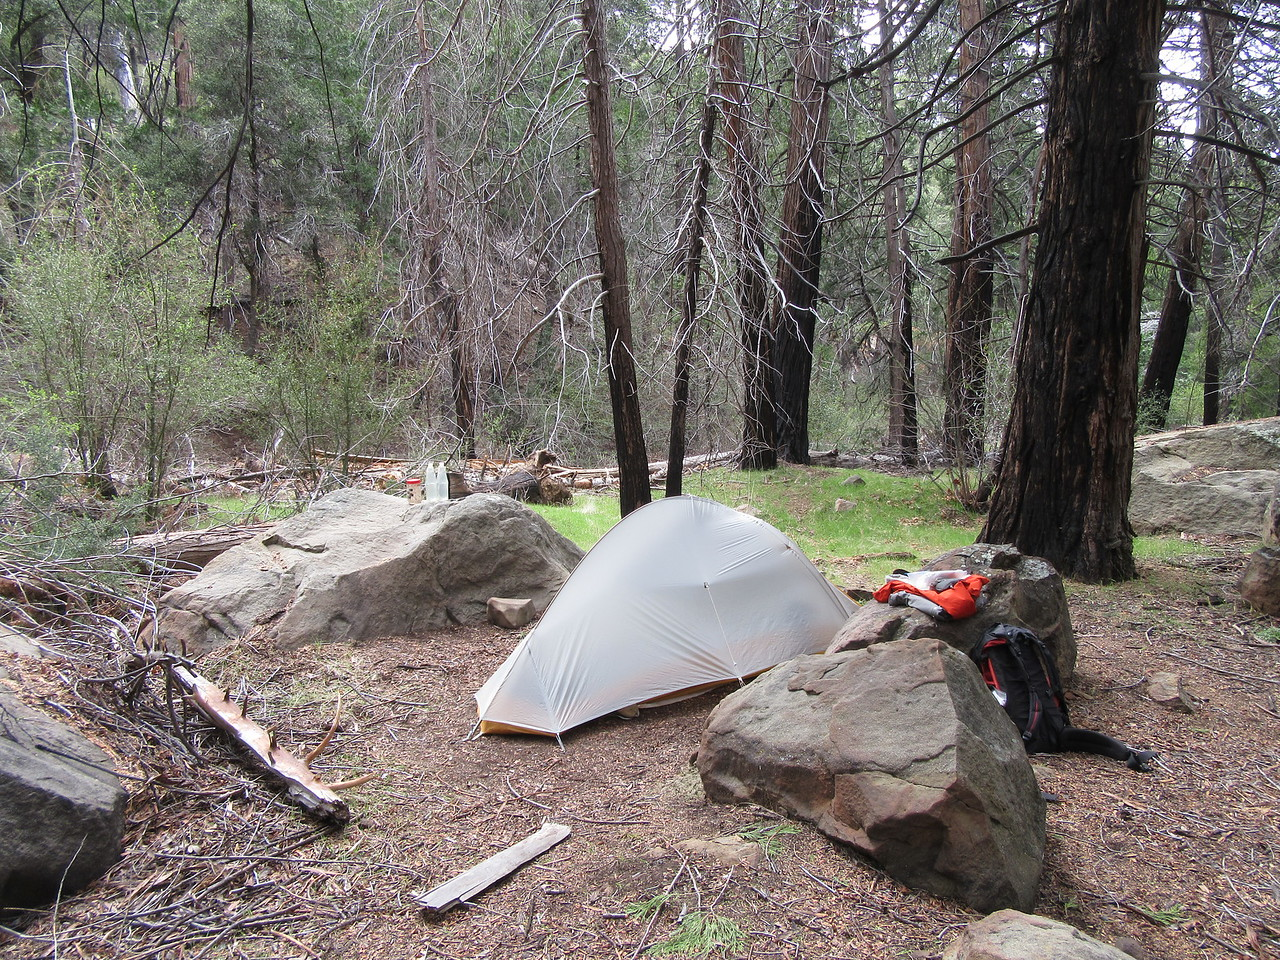 Therefore, I continued up the trail to Upper Bear Camp (5253'), which is now a much safer and nicer place to camp, especially with ...